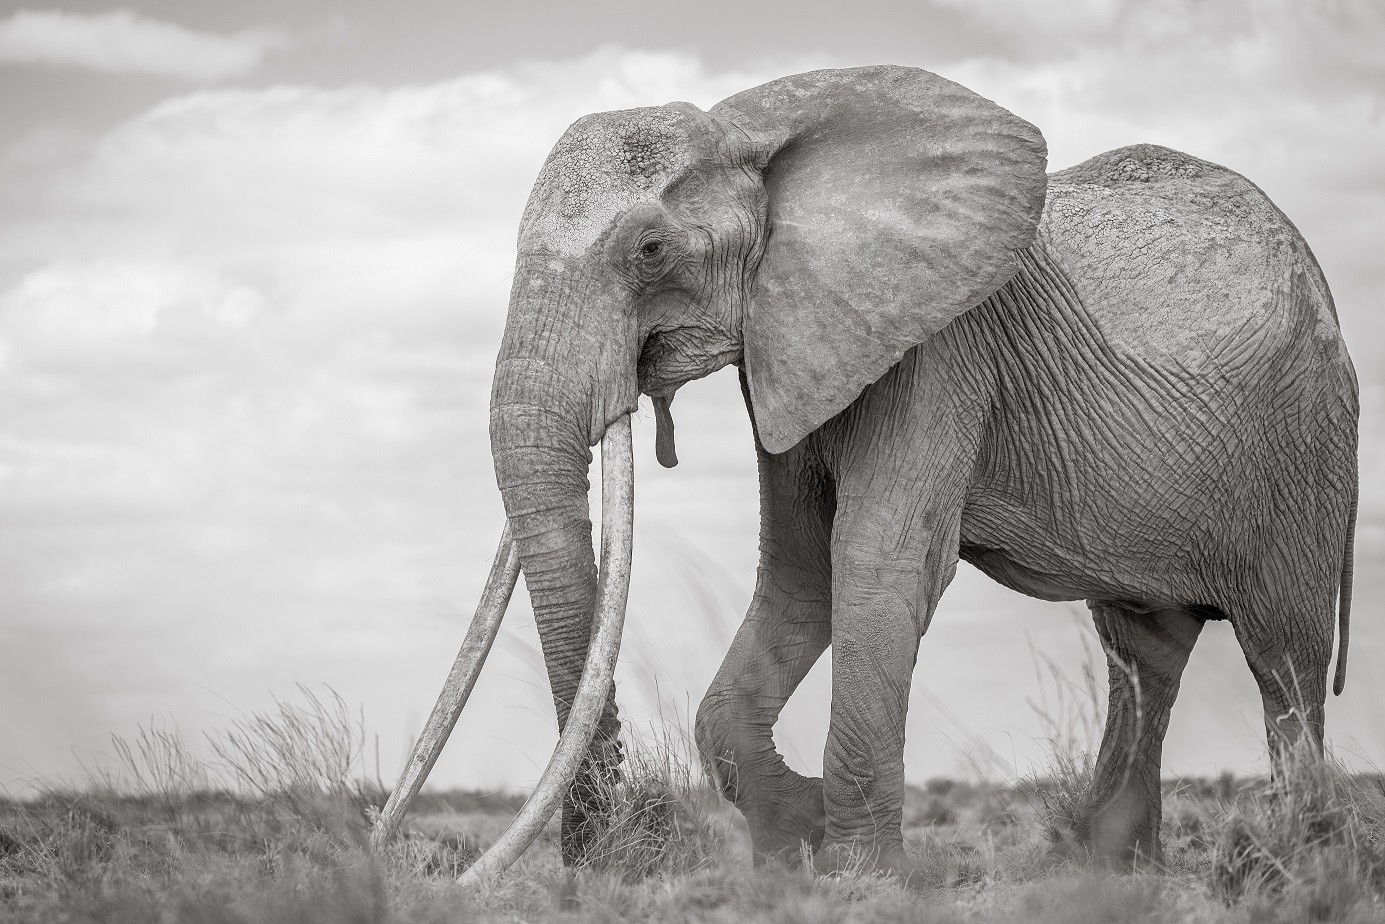 This is a remarkable cow elephant with tusks that reach down to the ground. Experts believe that there is no other female elephant with tusks to rival these in all of Africa. To find her we used a light aircraft to search an area twice the size of Wales. Once we spotted her from the air, I moved in on the ground to photograph her. When I saw her for the first time I simply could not believe my eyes! I took this image handheld with a 70-200mm lens. I crouched down in order to photograph her against the sky. She seemed to be a gentle old soul and regarded me with mild curiosity as I photographed her. I felt very privileged to have this moment of connection with her. I took this photograph in August 2017. At the time, Tsavo was in the midst of a severe drought. From this image it is possible to see how skinny she is. Six weeks after I photographed her, she sadly died of old age (her death was almost certainly accelerated by the drought). She would have been more than 60 years old. She was the last of her kind, a relic from a bygone era, but she successfully passed on her genes and with concerted conservation efforts, an elephant like her may appear again in the future. African bush elephant (Loxodonta africana) Tsavo East National Park, Kenya